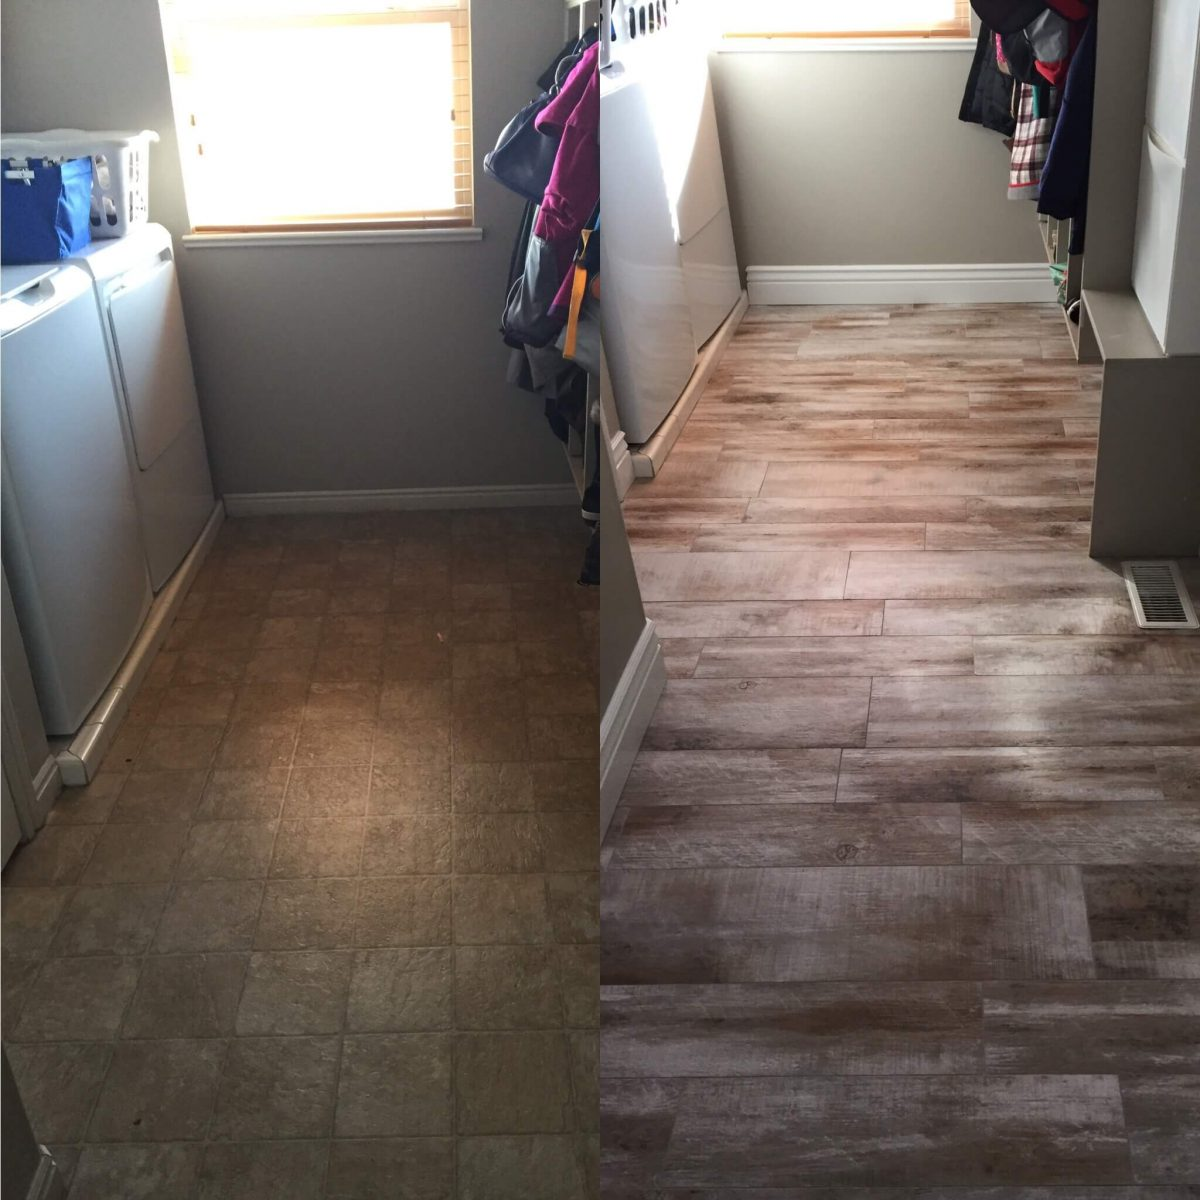 Flooring before and after reveal wood looking tile 365 days of from laminate to tile in the laundry room dailygadgetfo Gallery